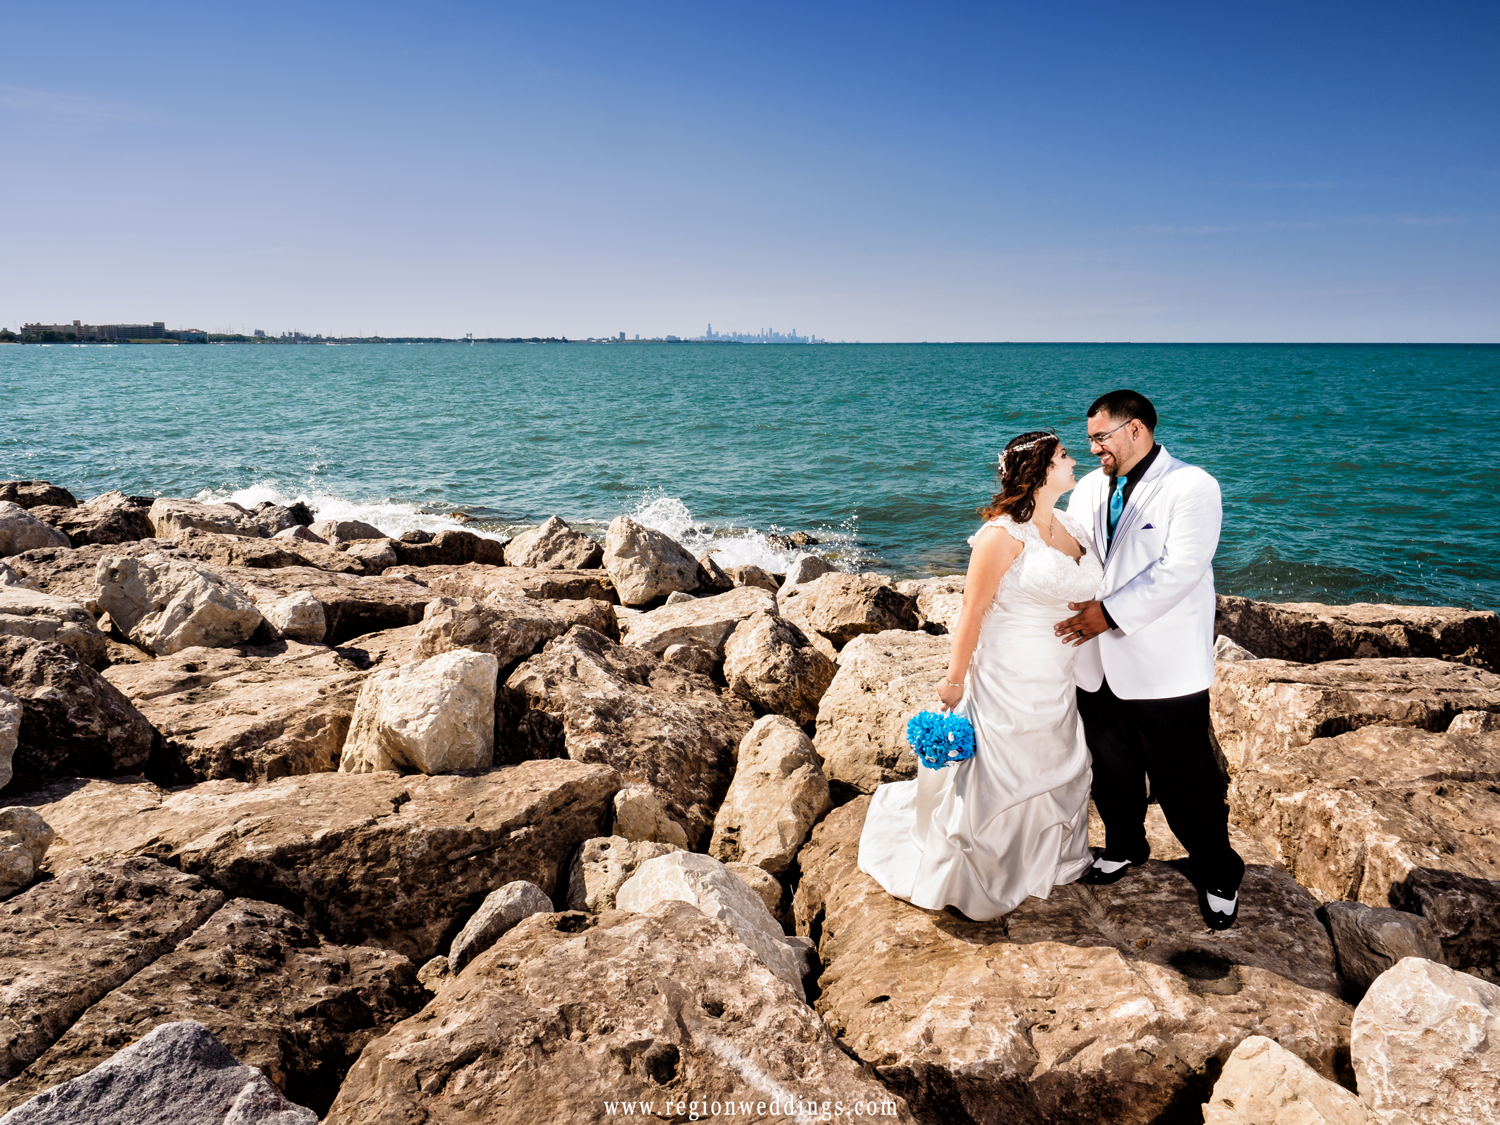 Bride and groom on the shore of Lake Michigan with Chicago in the background.